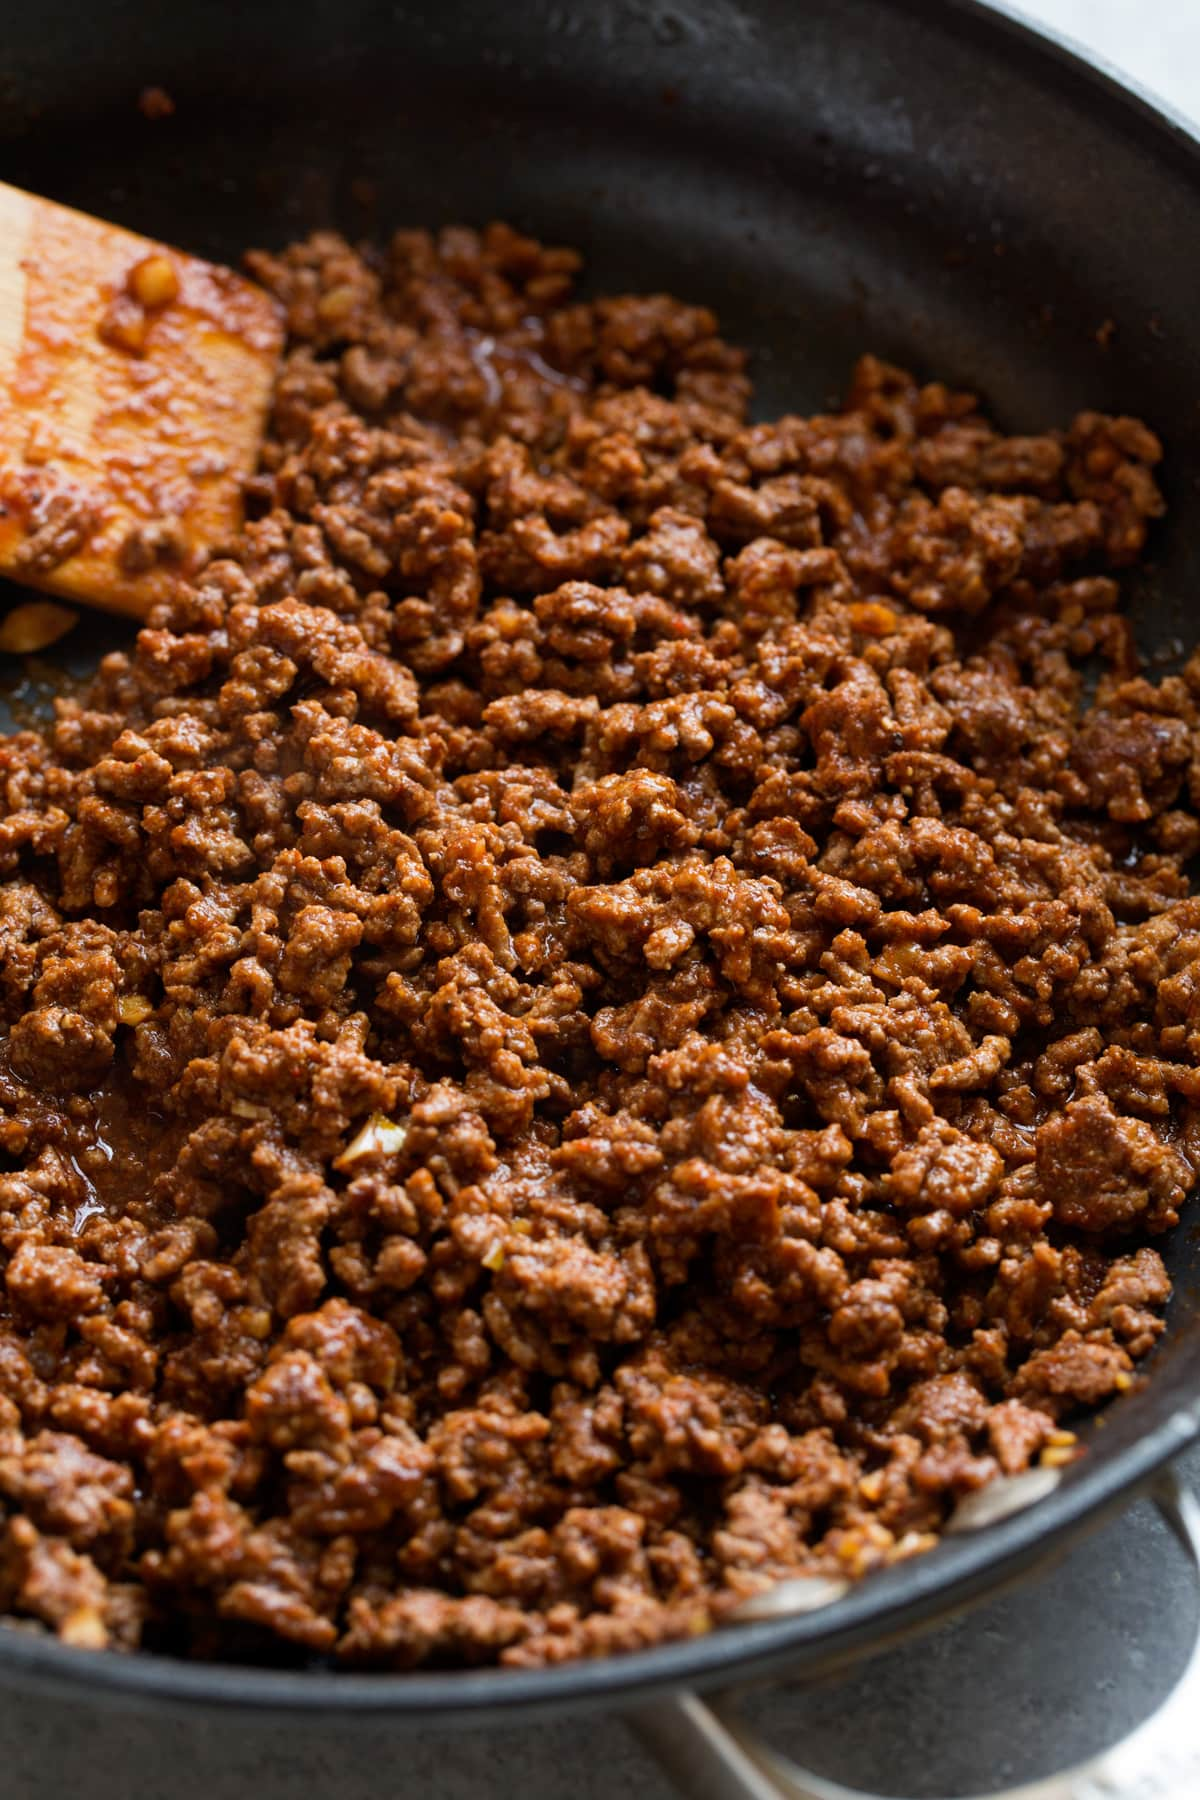 Ground beef taco meat filling in a skillet.